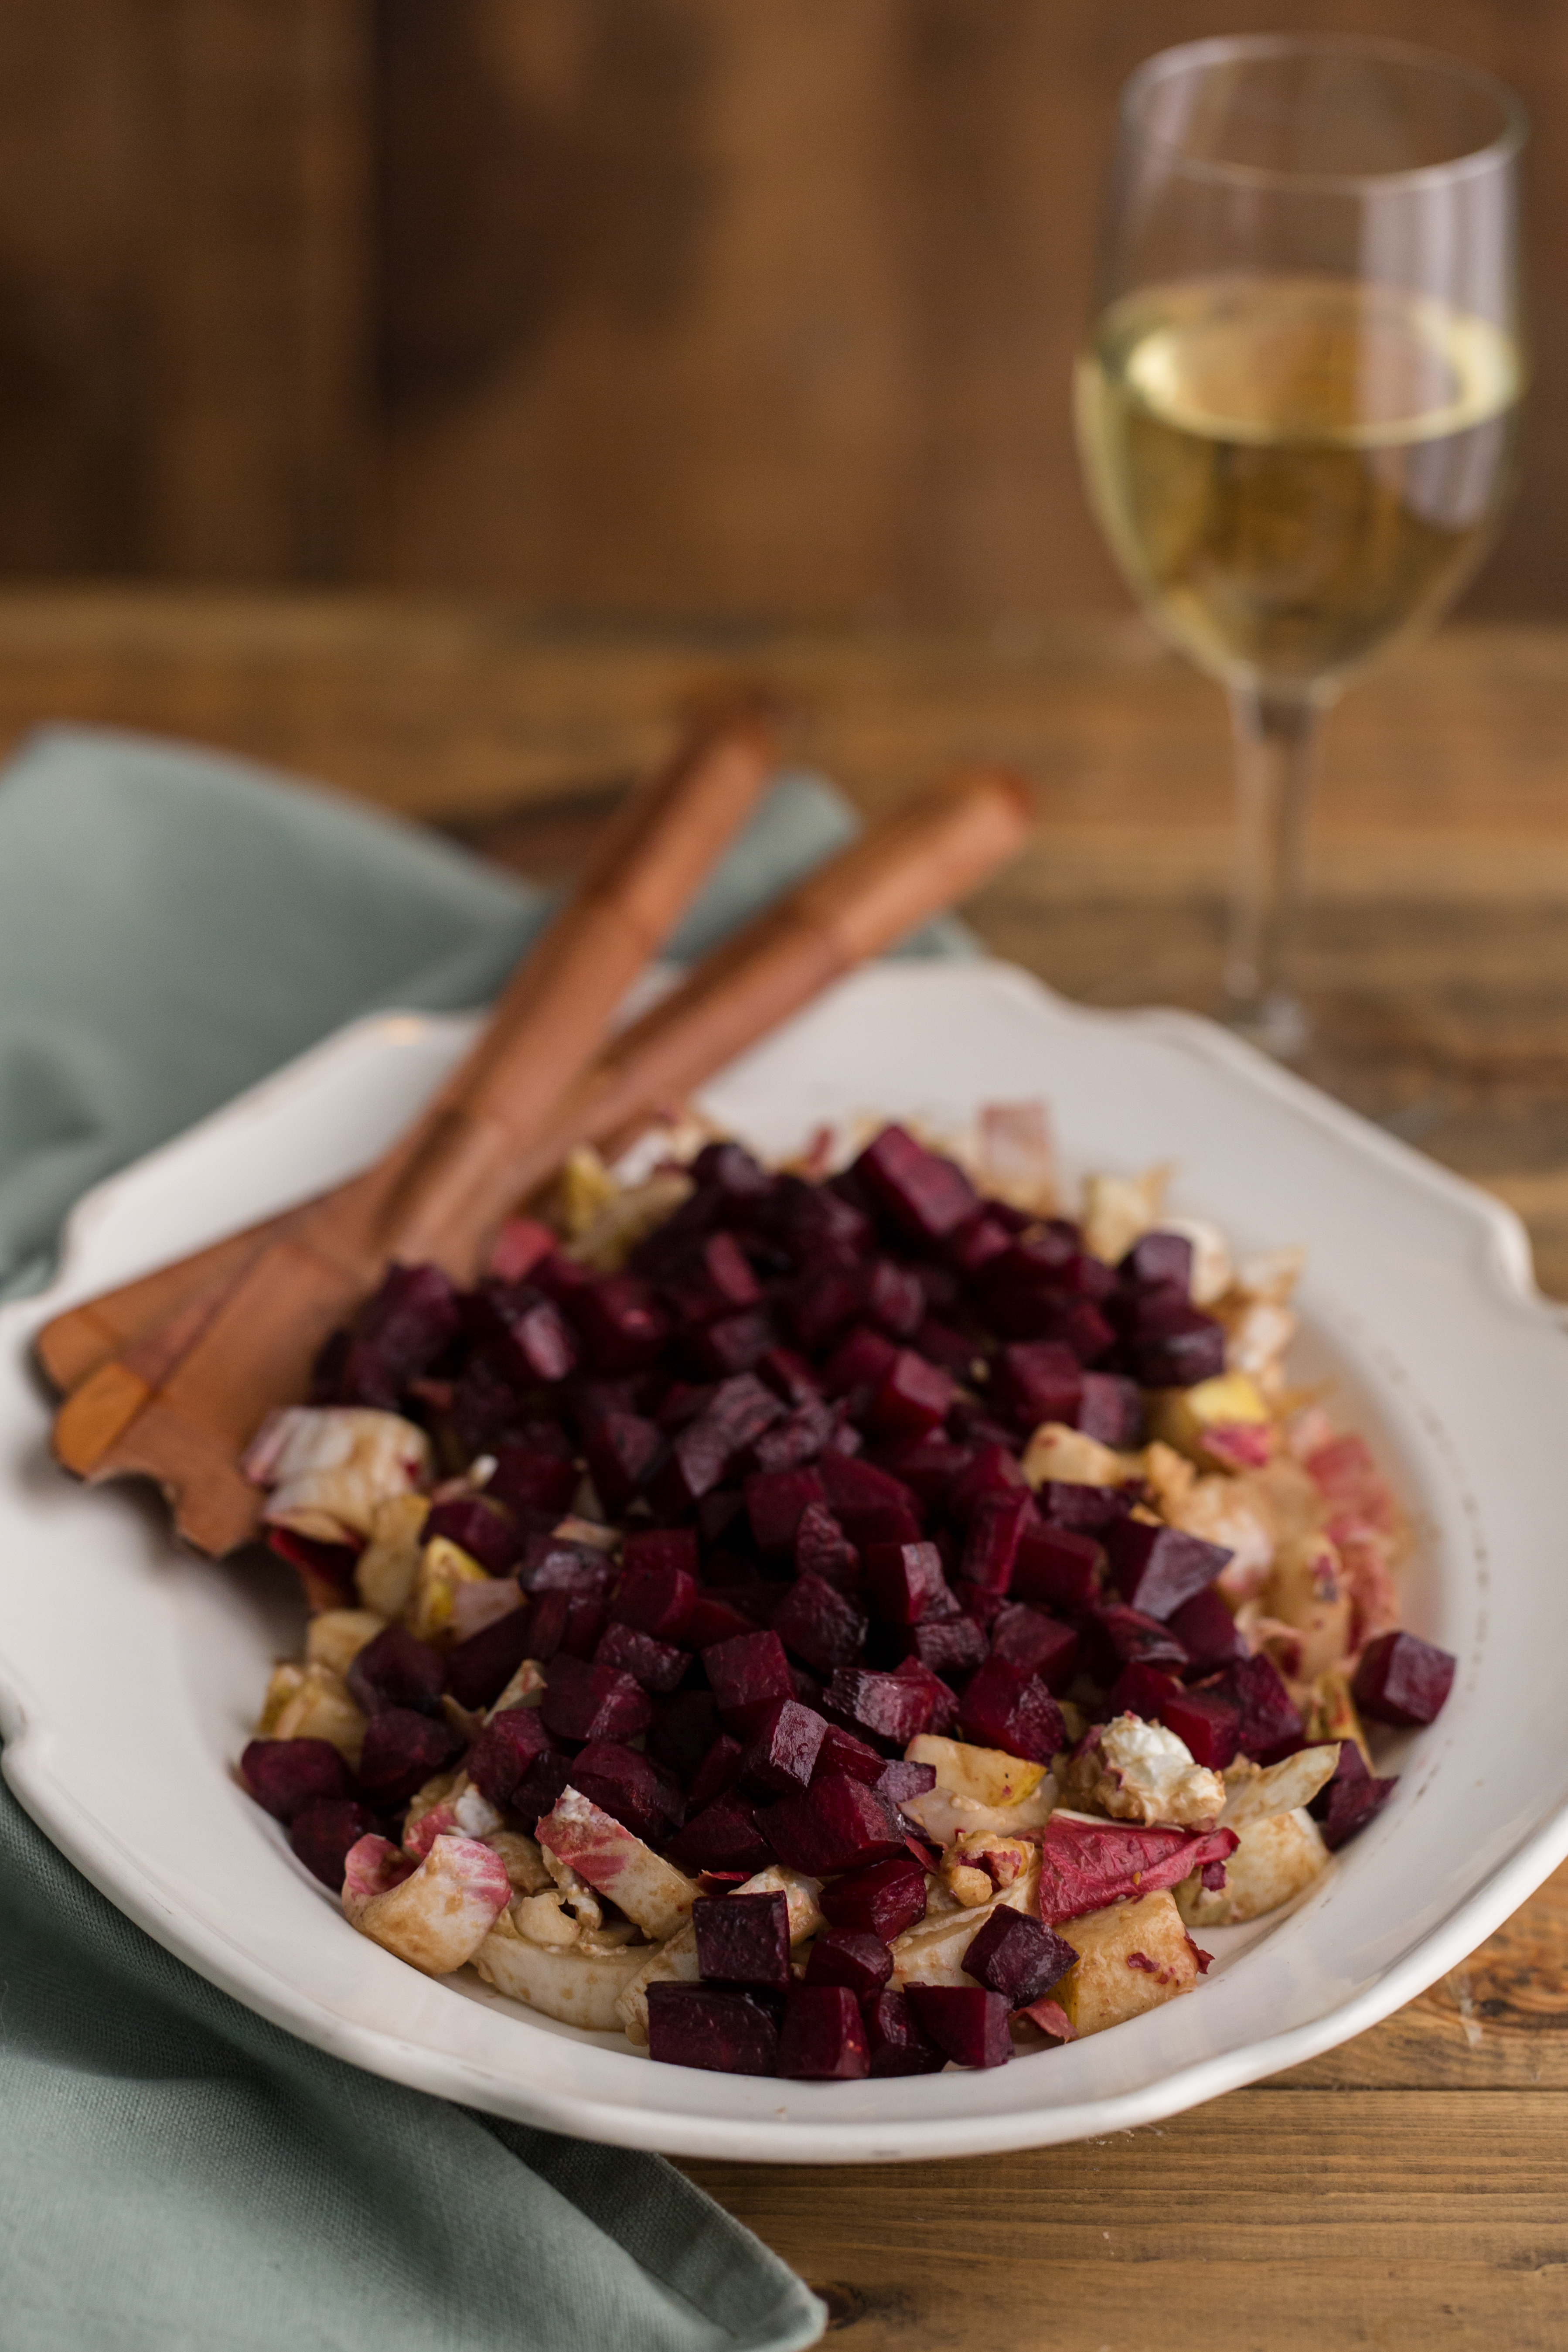 Endive Salad with Roasted Beets, Pears & Walnuts